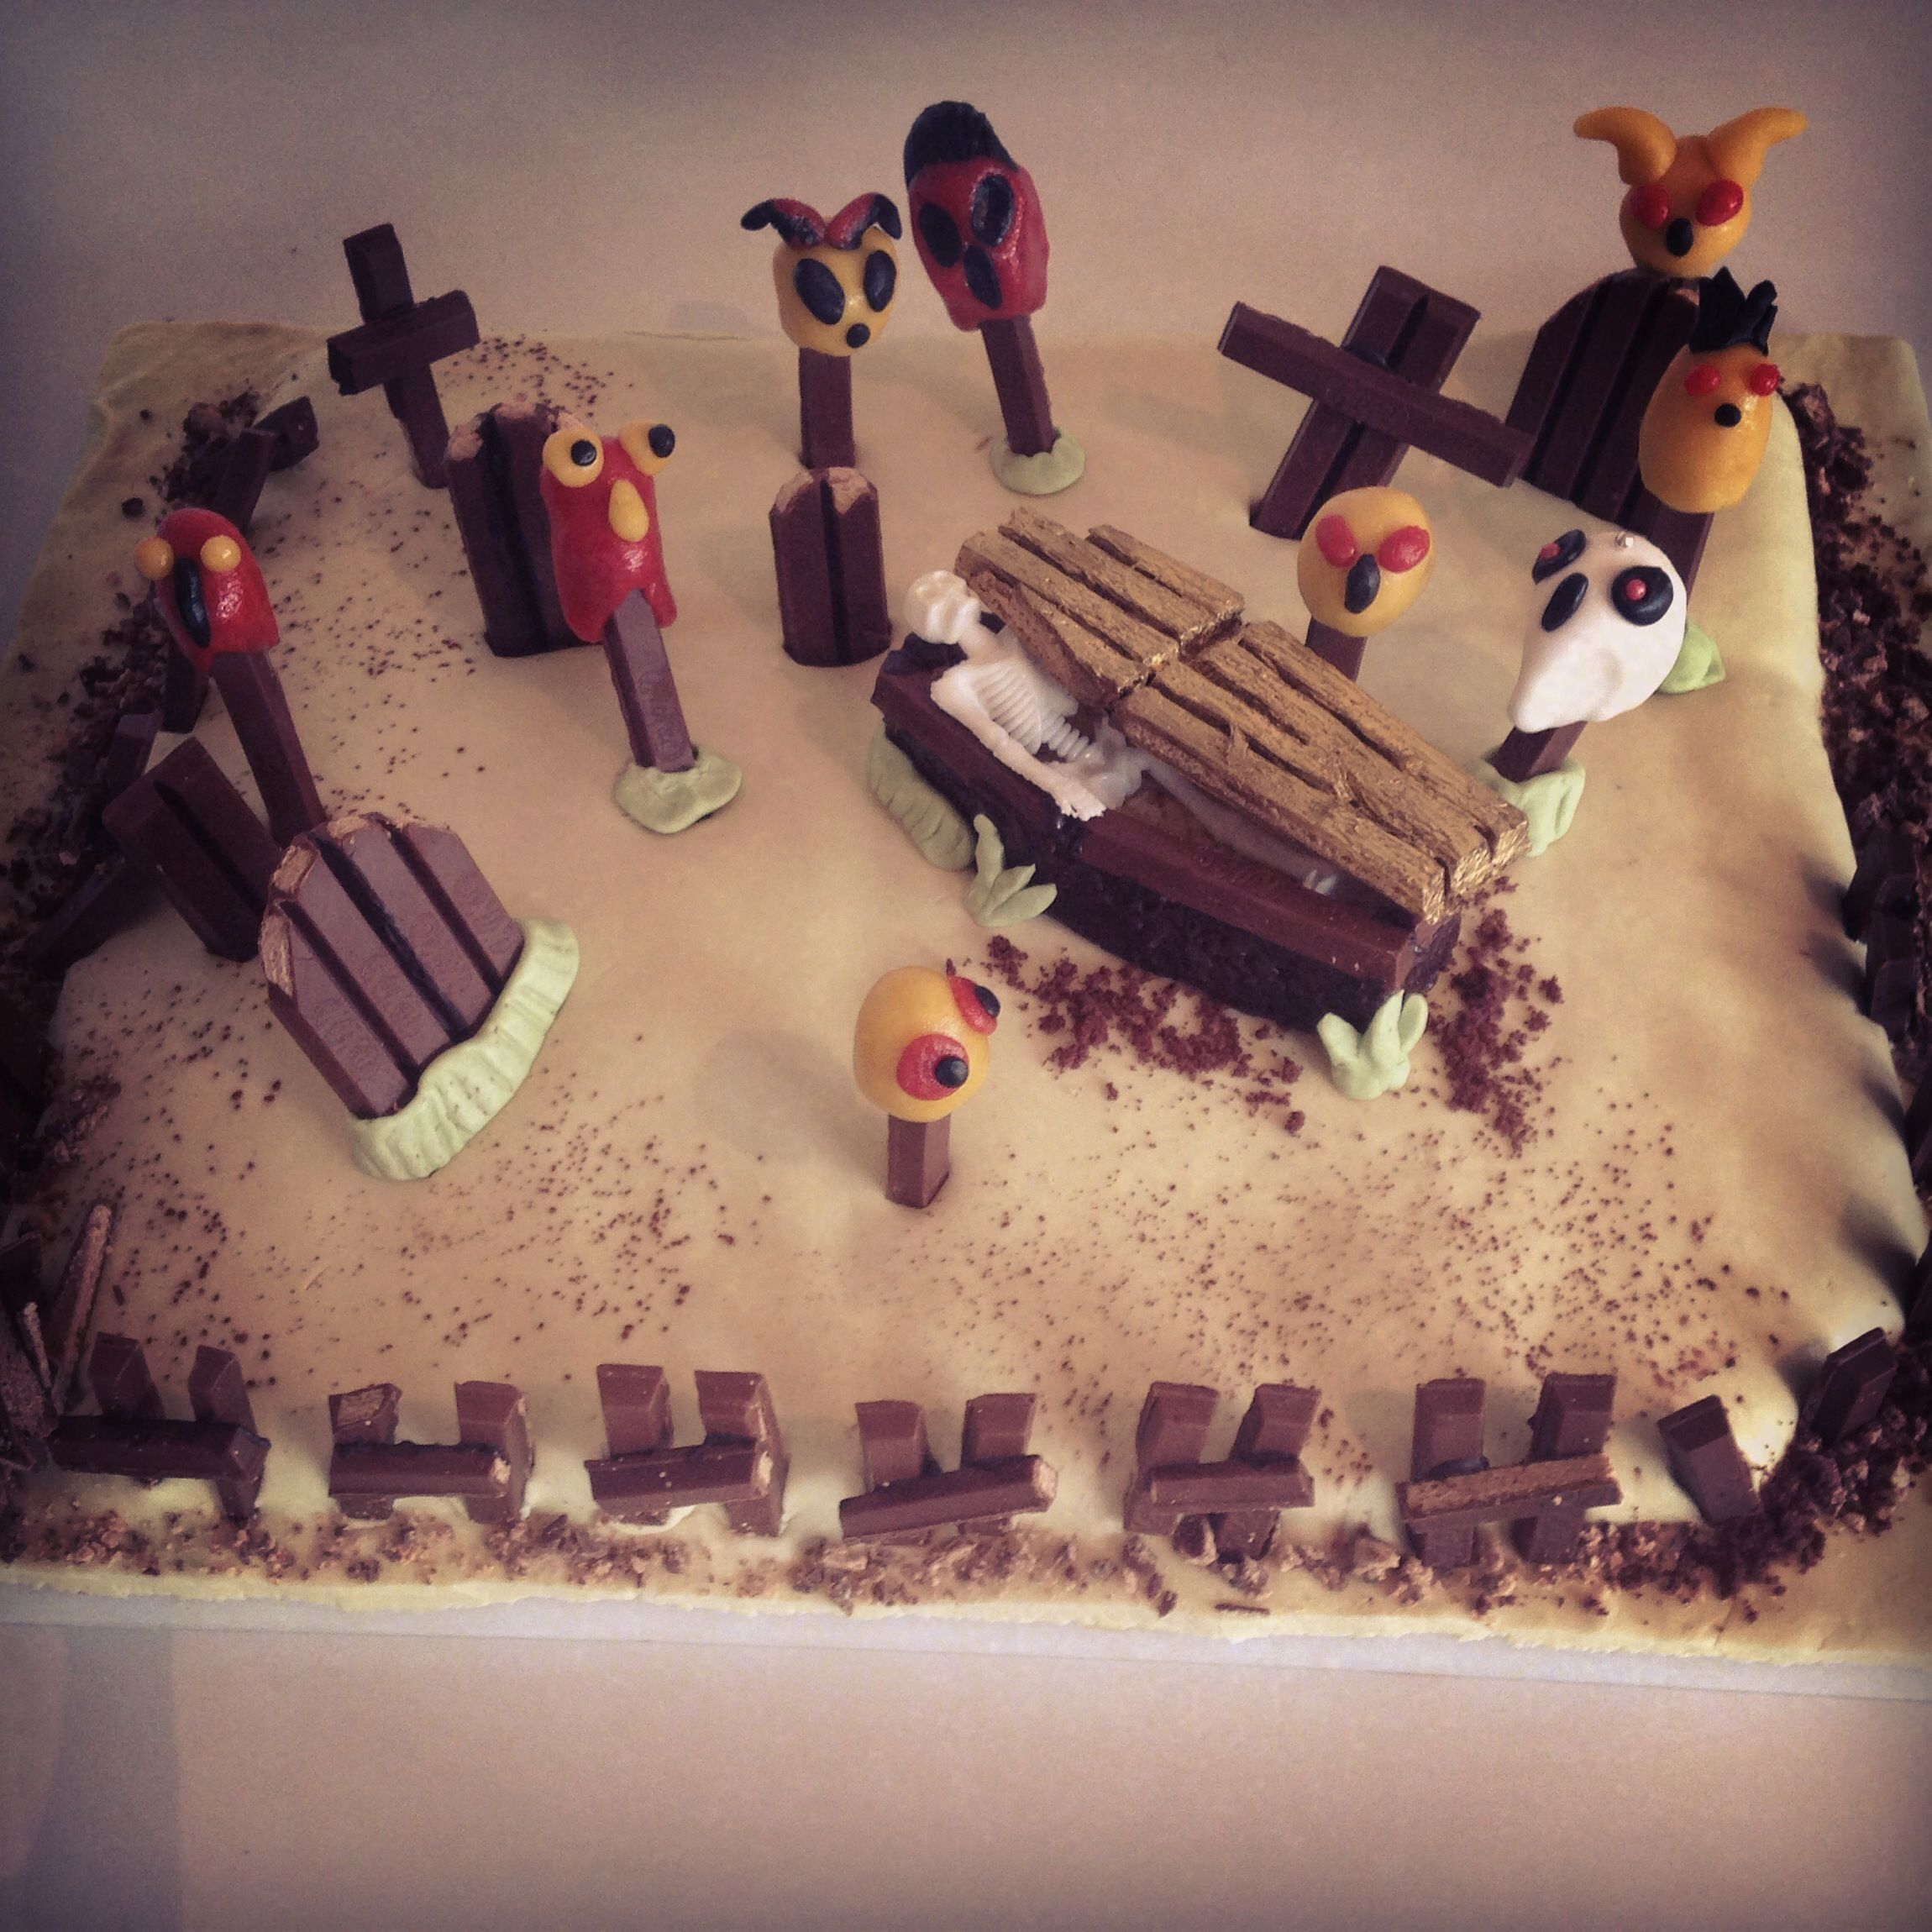 Been following our #SpookyBreakTimeTips?  Here's no 4. Put it all together to create a seriously spine-chilling #KITKAT graveyard cake! Happy #Halloween